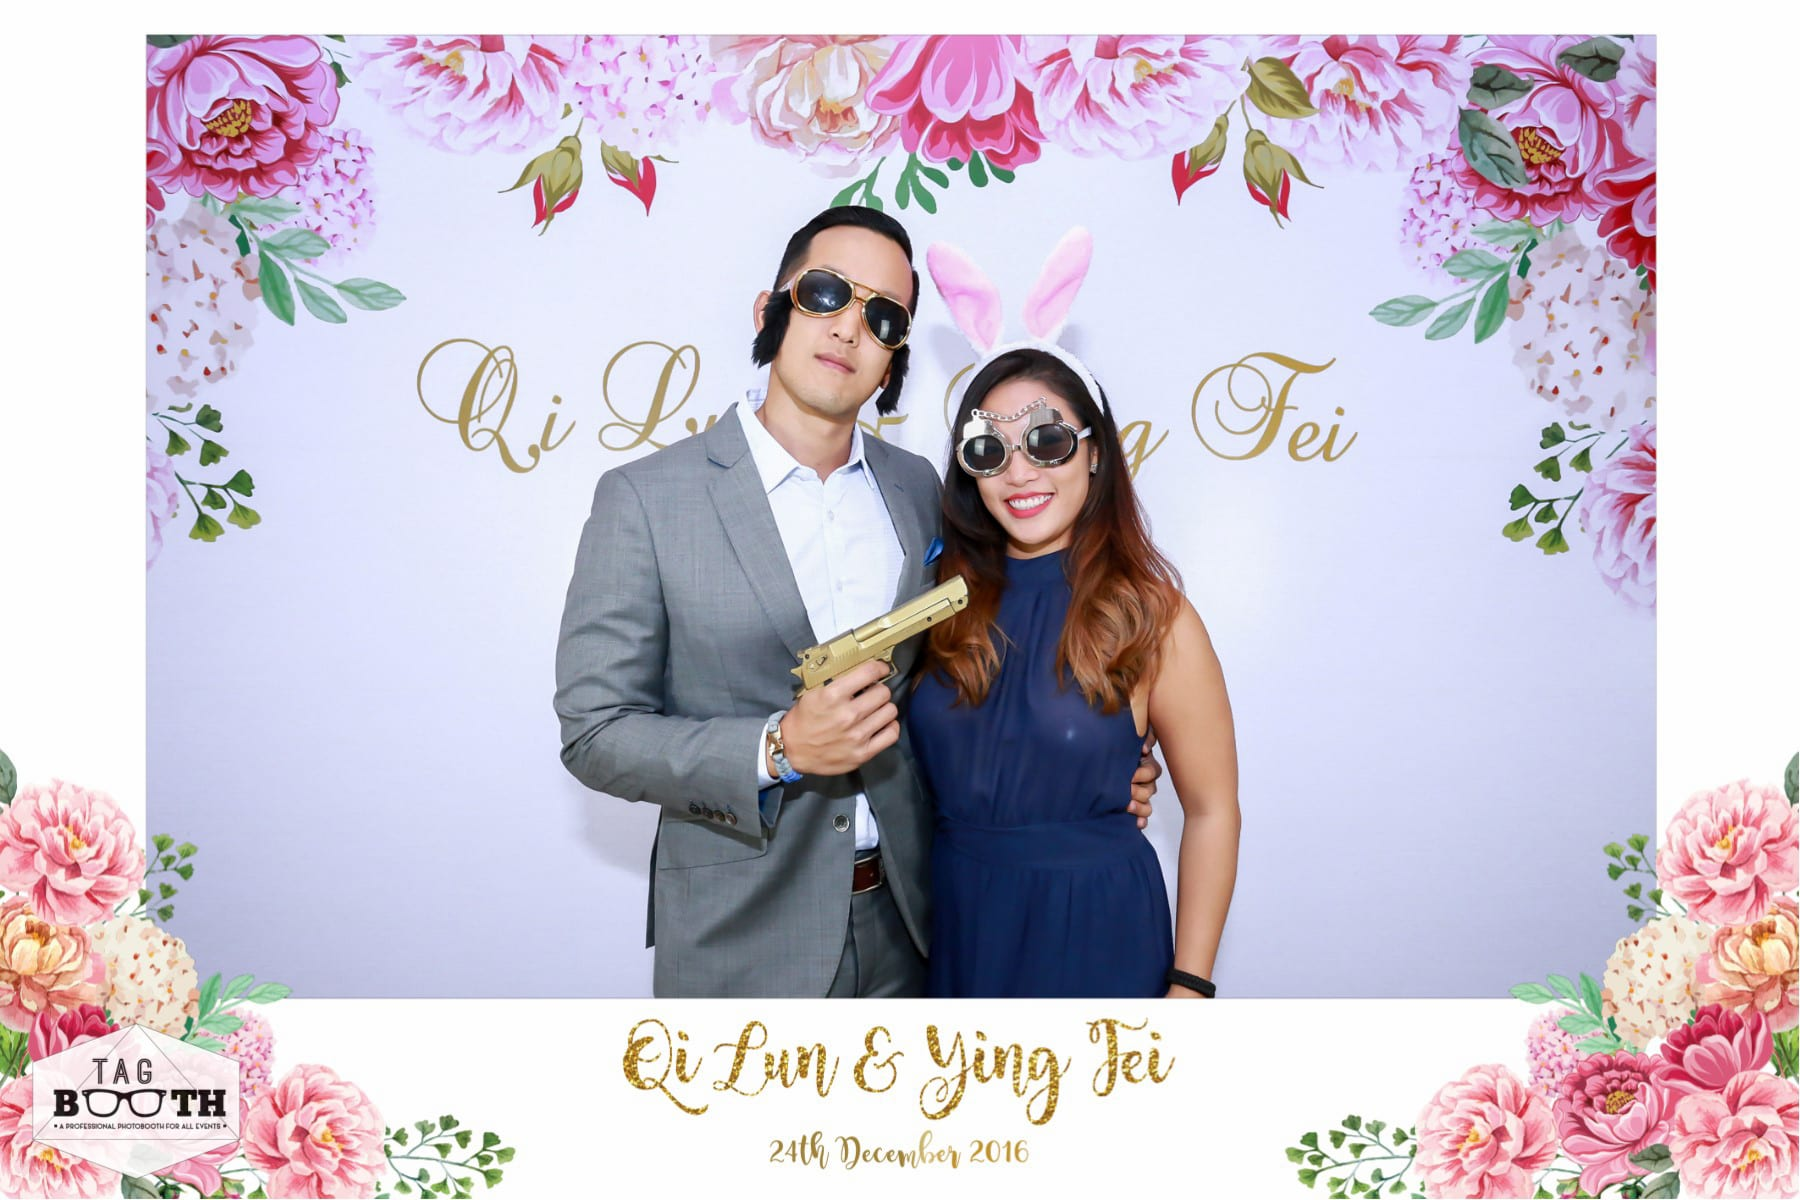 Wedding Photo booth Idea